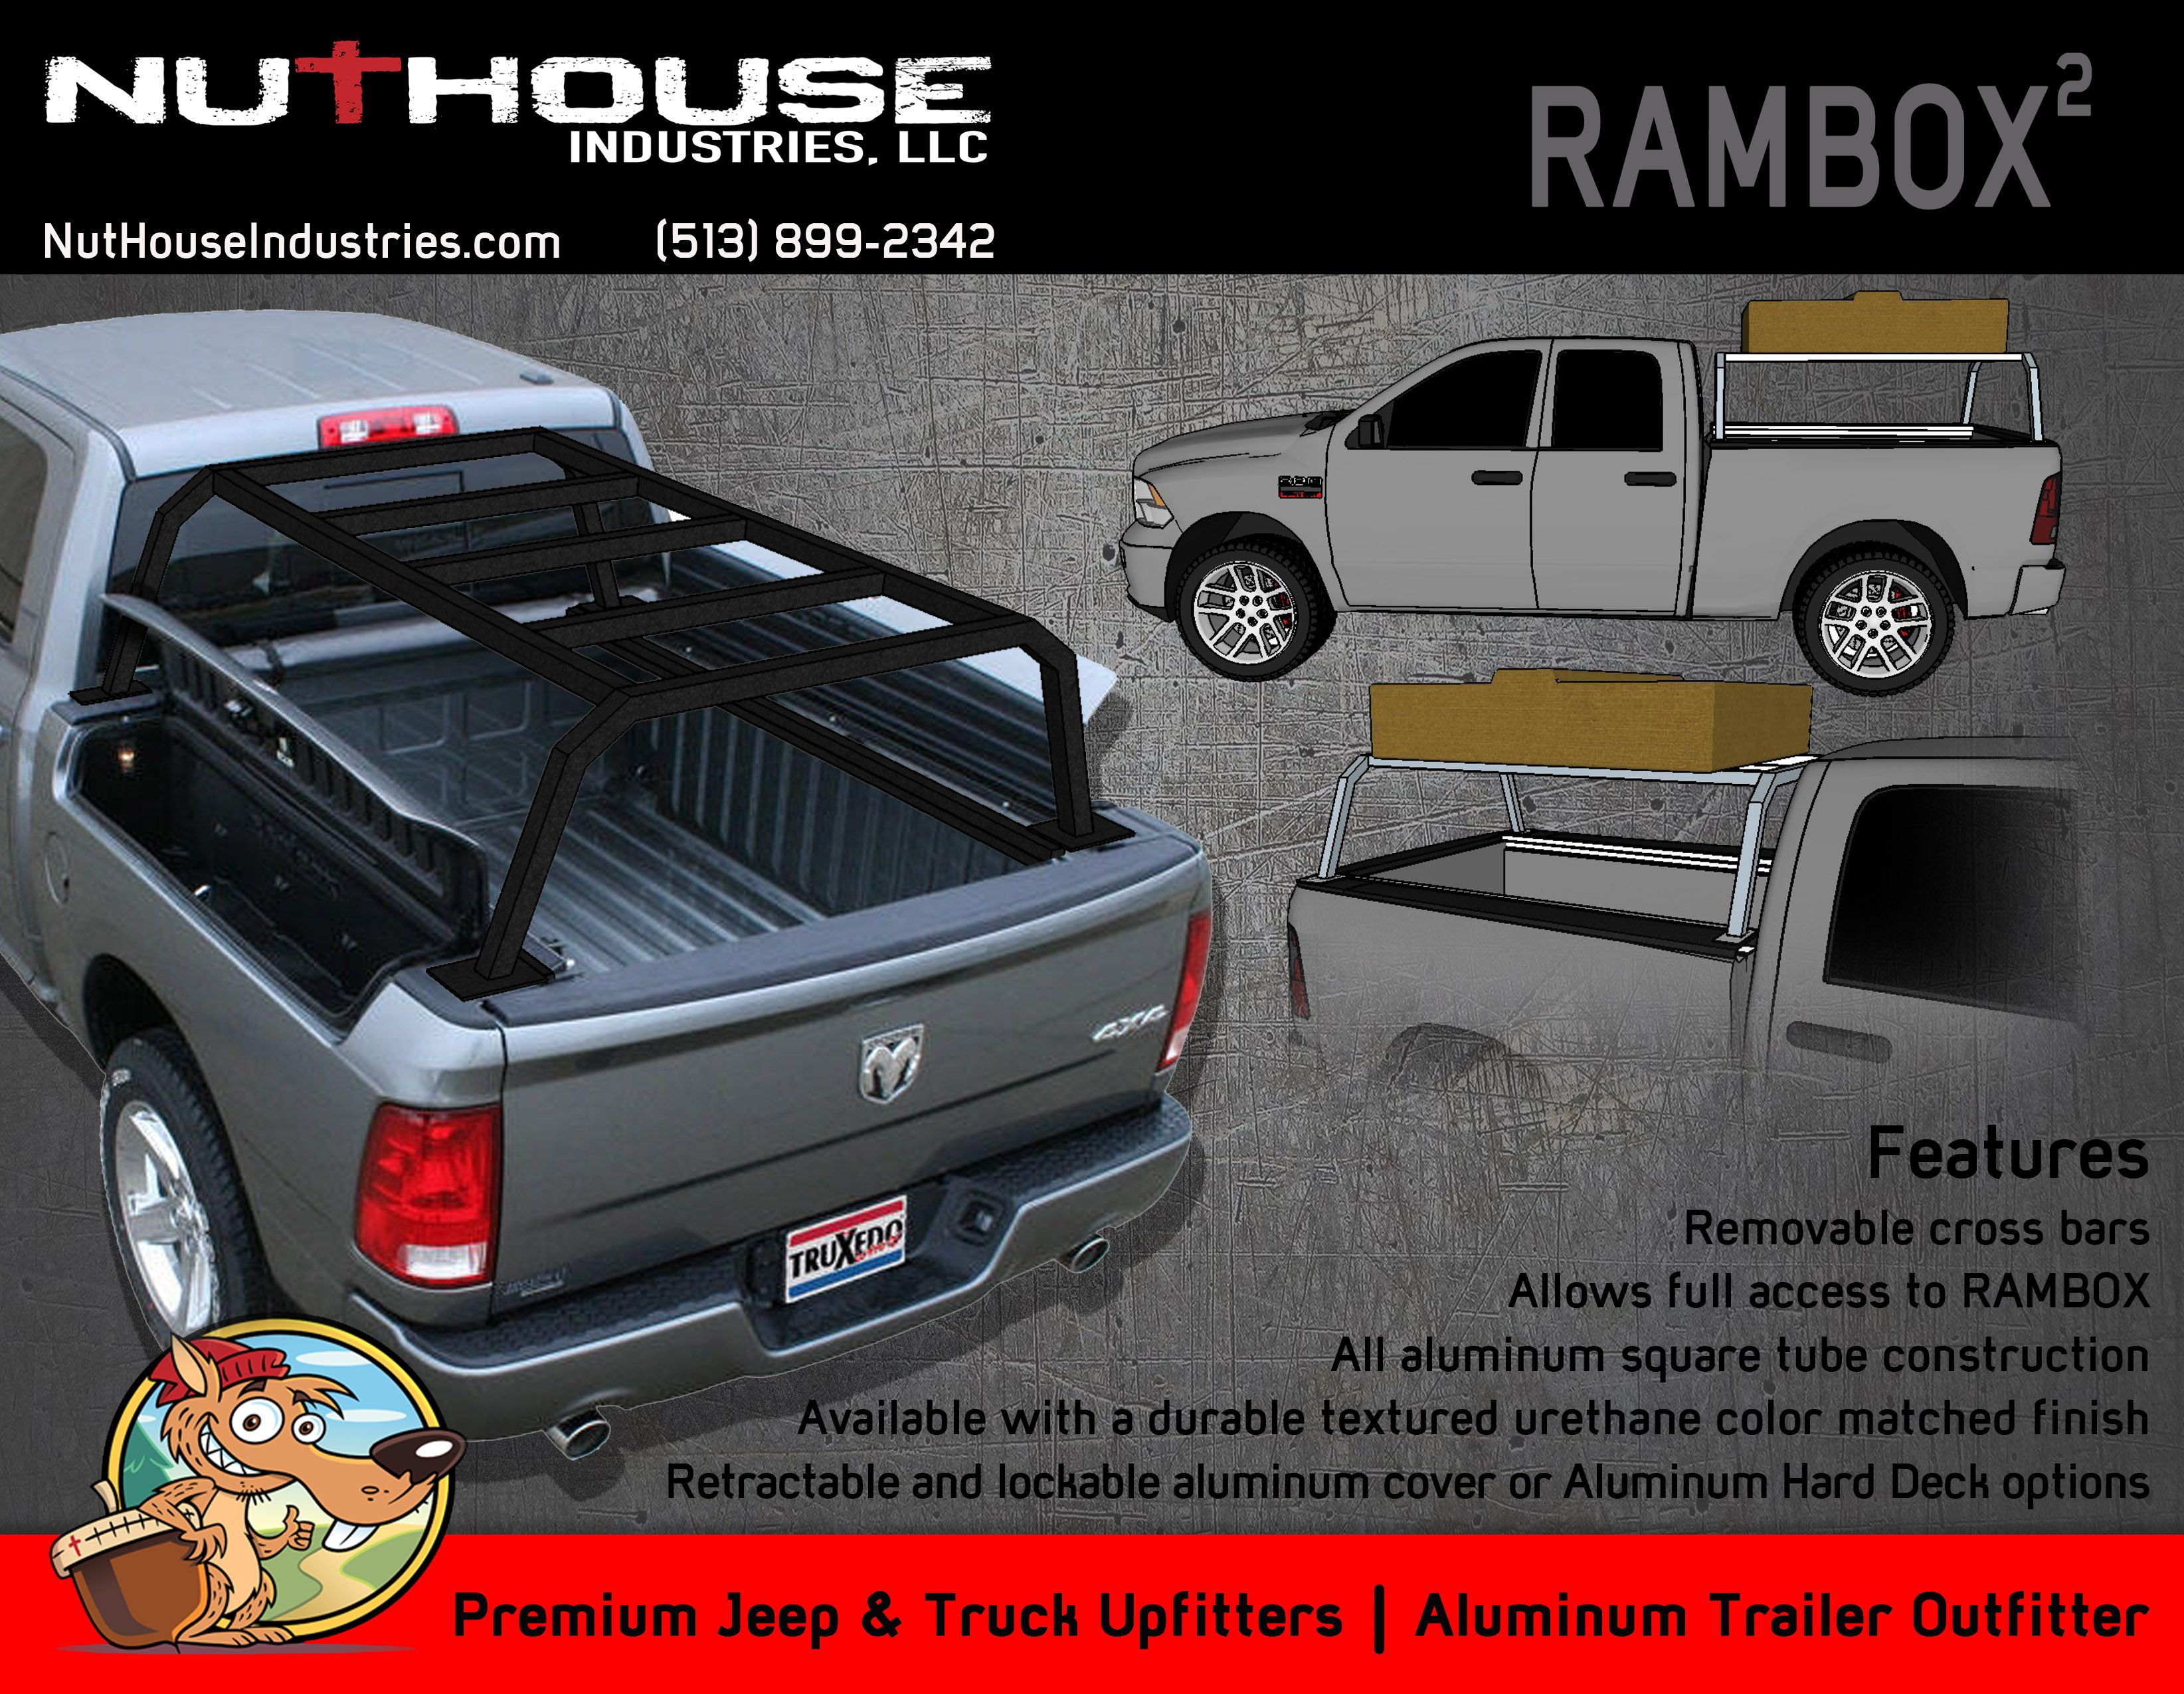 Nutzo Rambox Series Expedition Truck Bed Rack Nuthouse Industries Rambox Truck Bed Expedition Truck